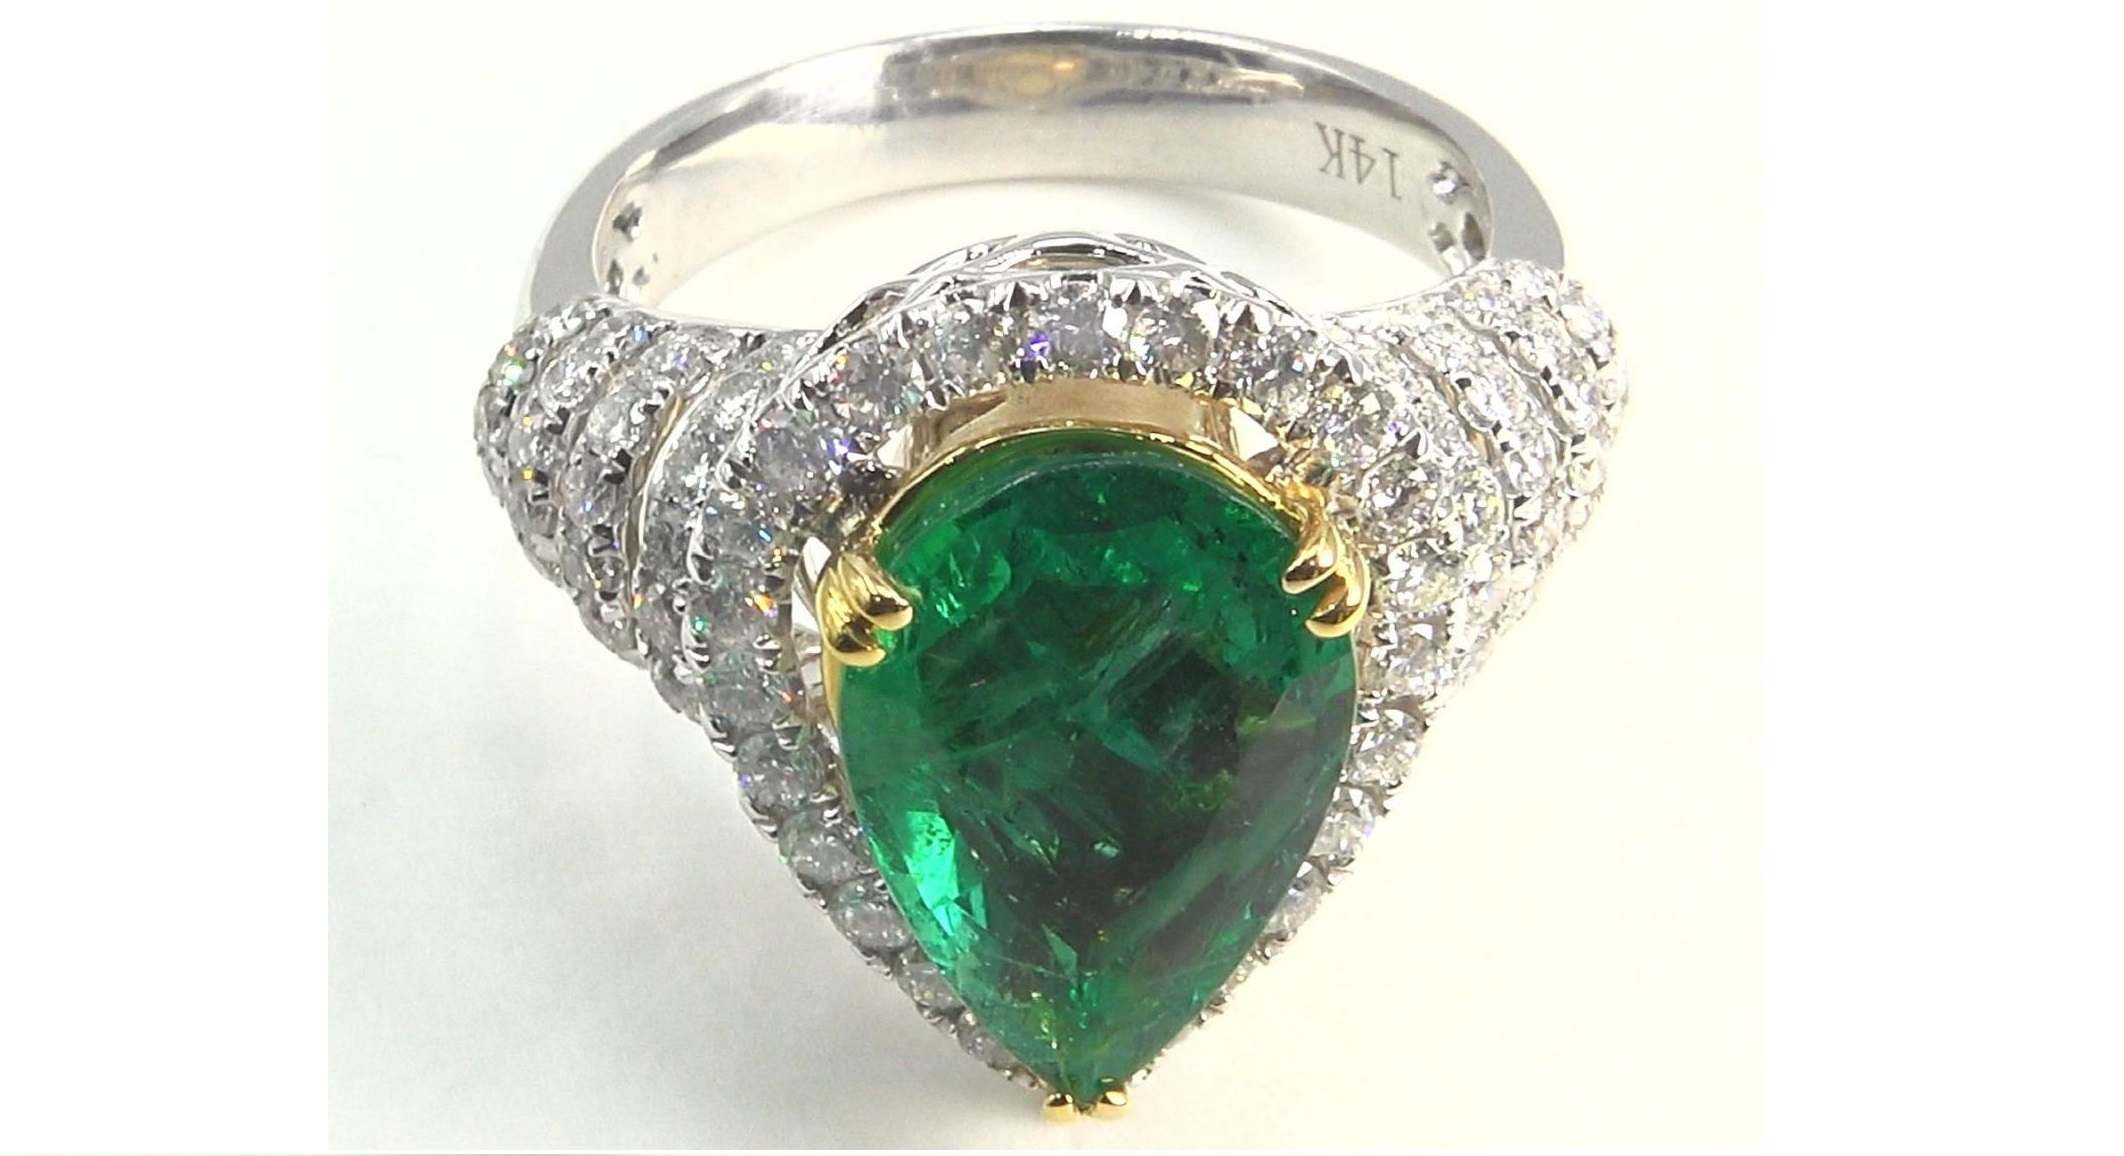 Natural Green Emerald Diamond Engagement Ring 14k Gold 4.86 TCW GIA Certified